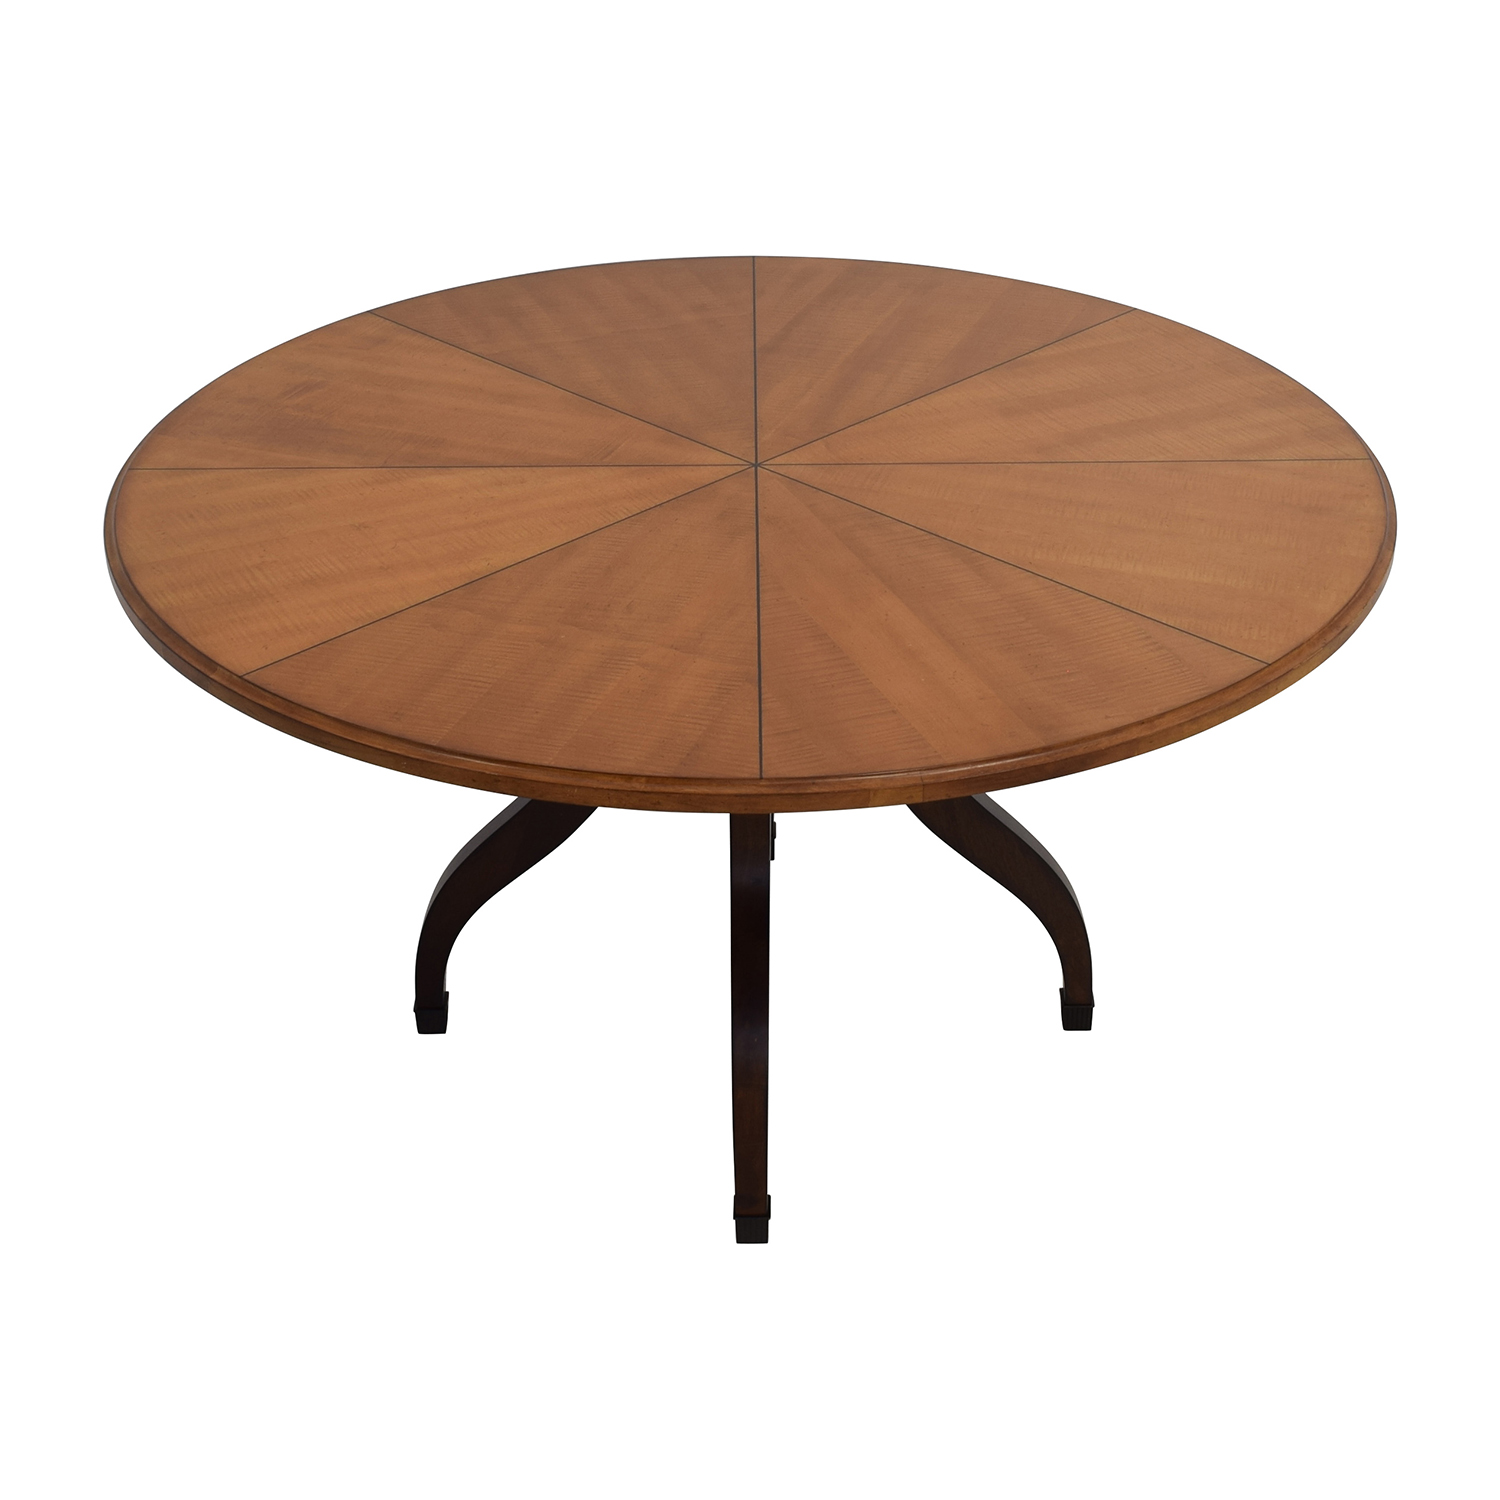 Hooker Furniture Gaia 60 Dining Table / Dinner Tables